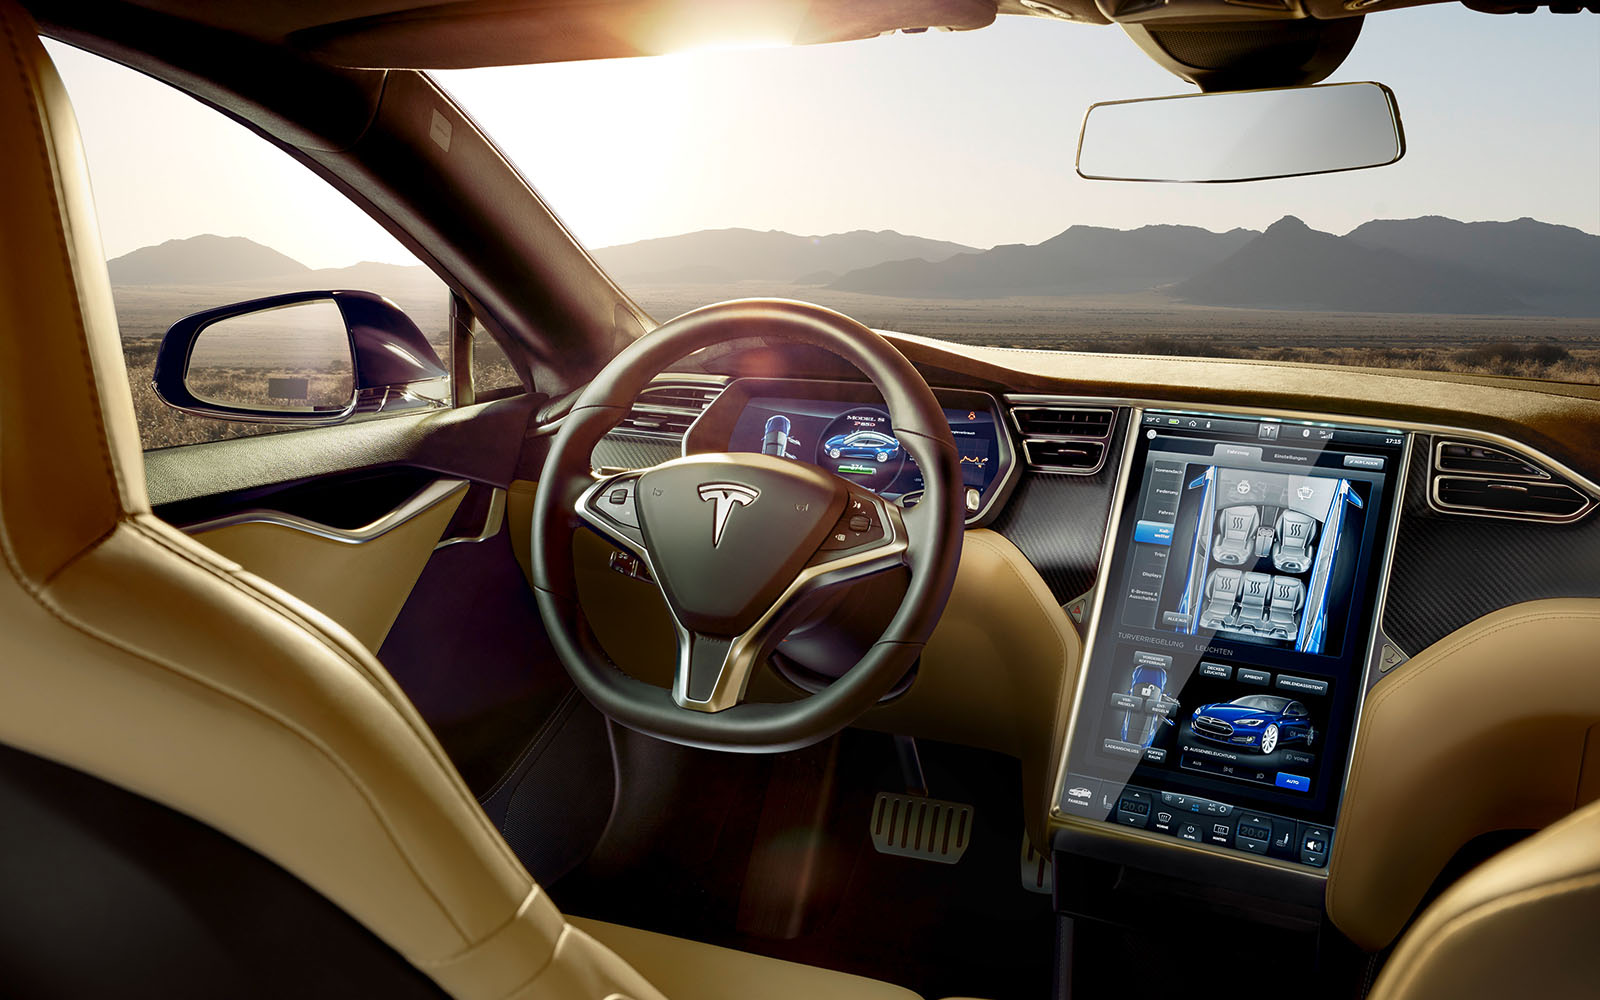 Elon Musk has hinted that Tesla EVs would be getting an upgrade soon that would make it possible to customize the (simulated) engine sound and the horn sound. According to him, the media library will contain an impressive variety of flatulence sounds, along with such exotics as goat bleating.